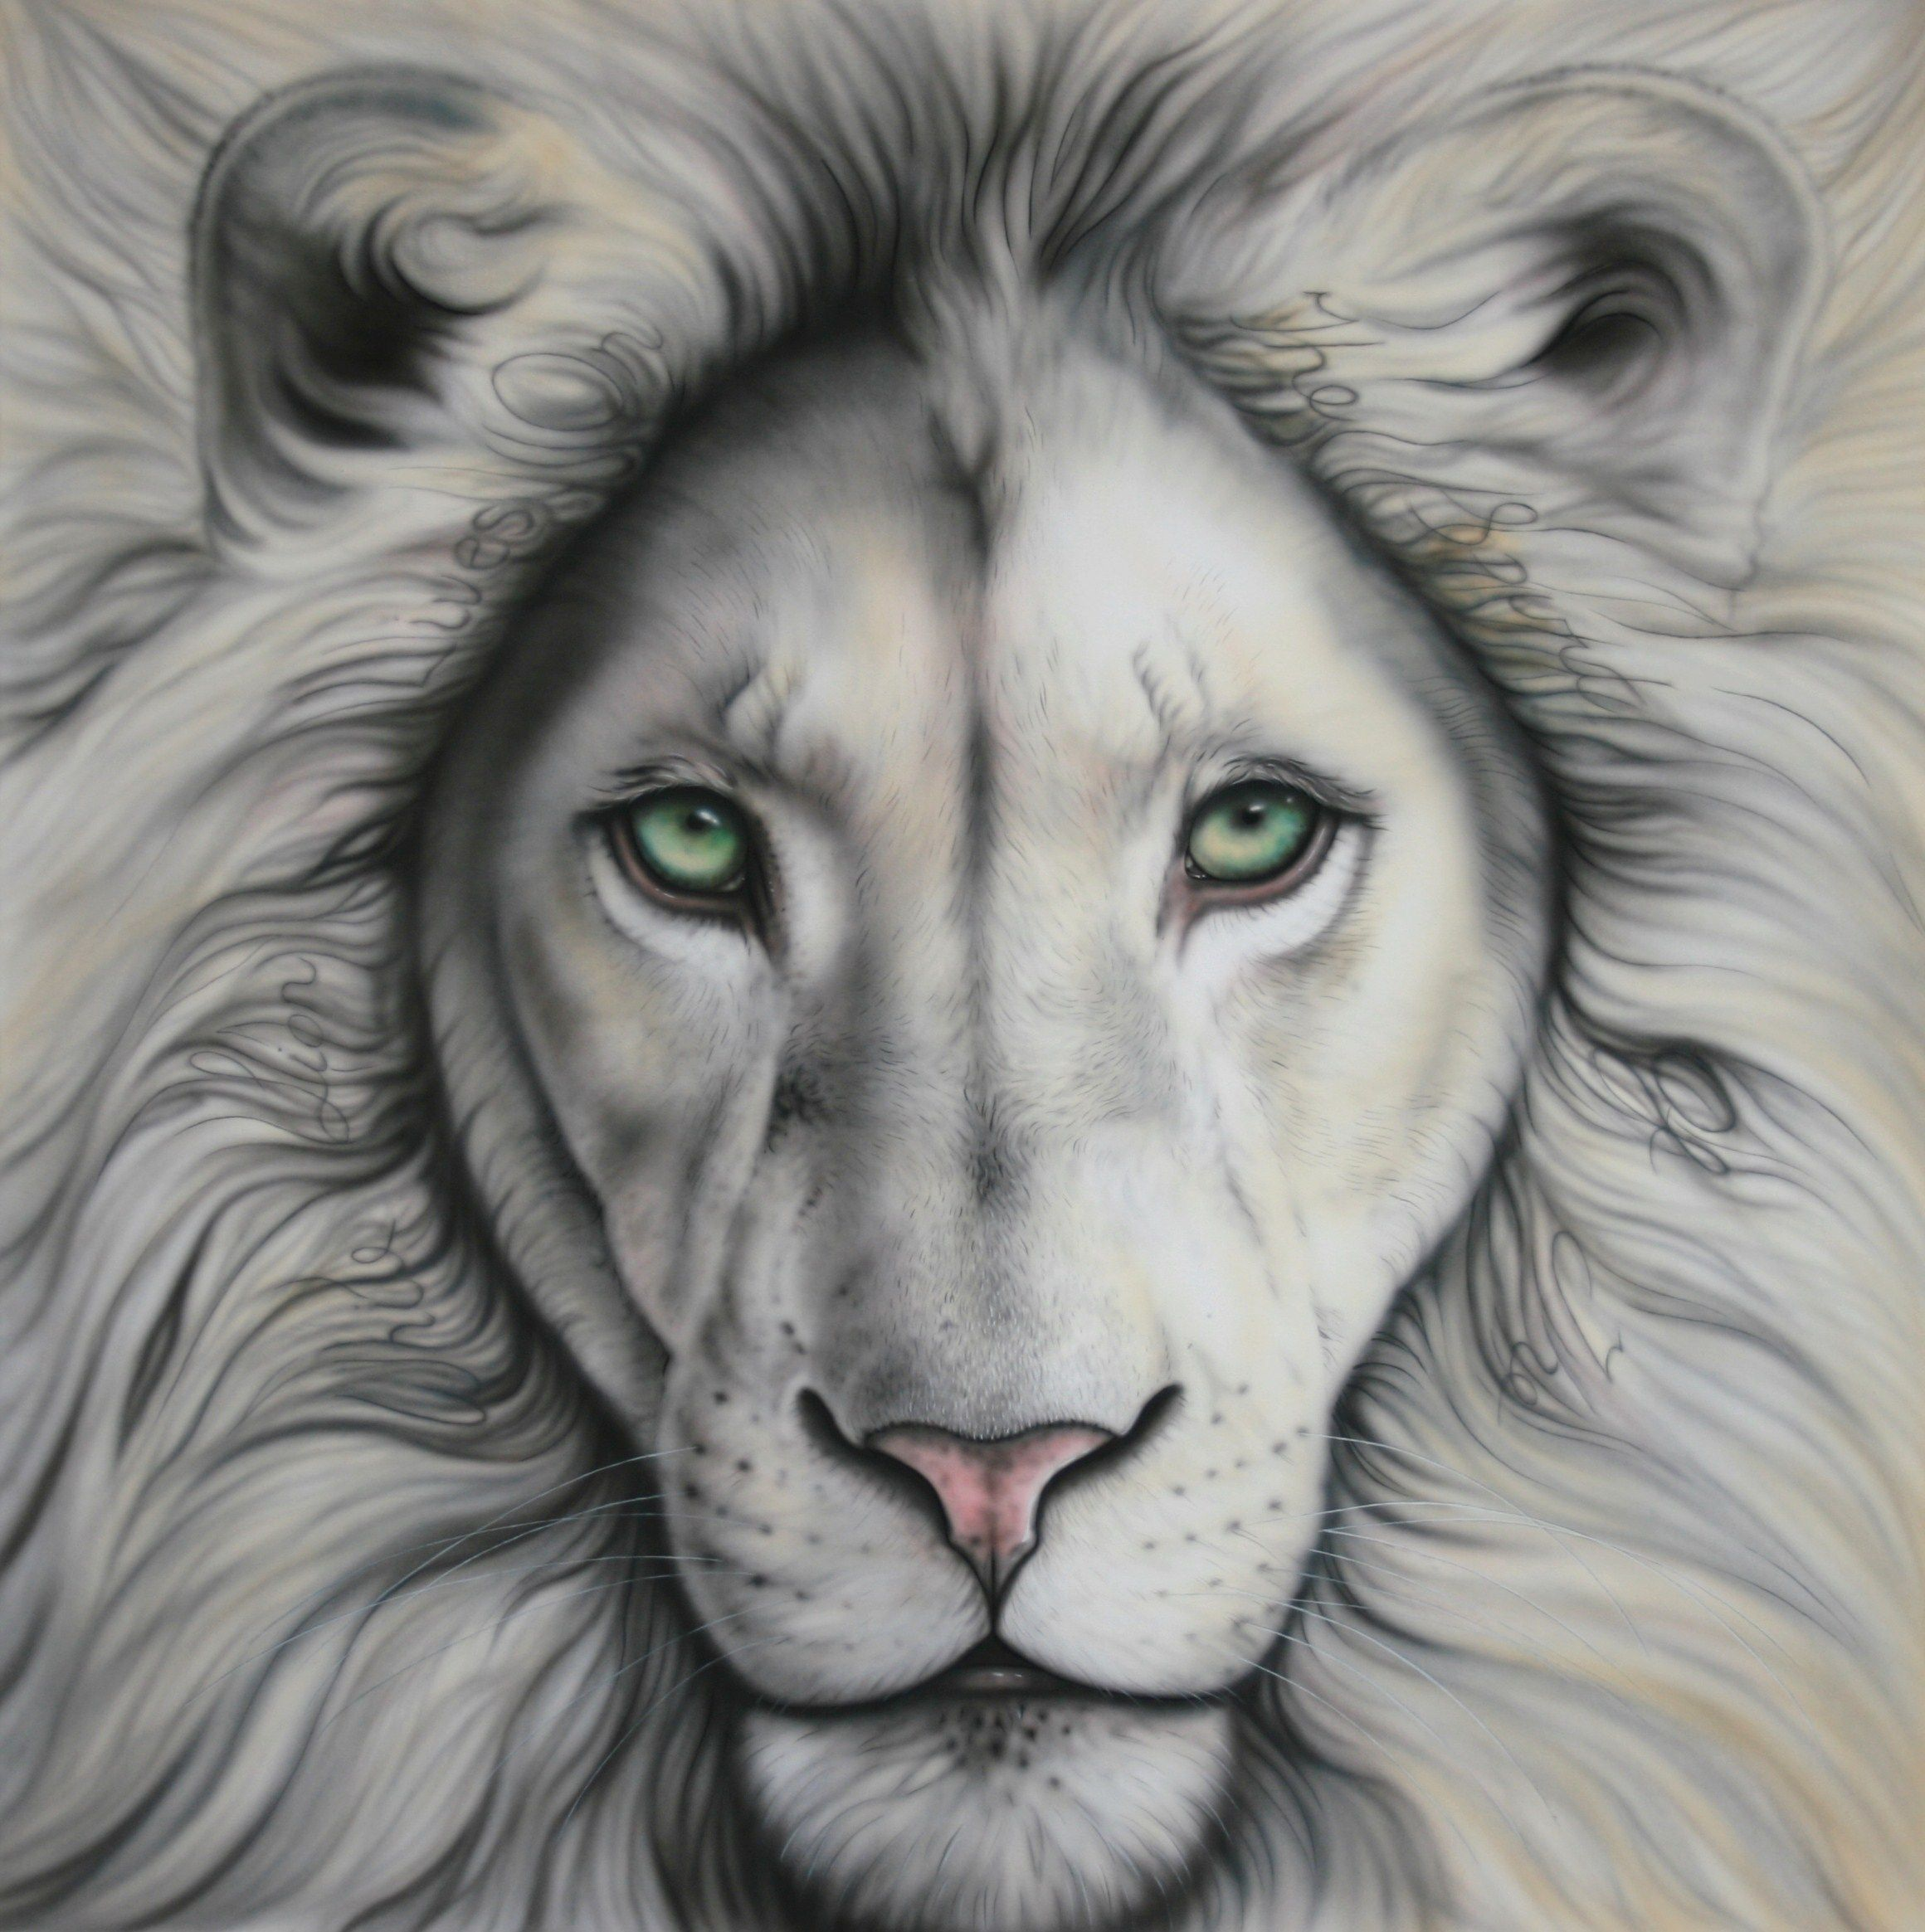 Give A New Look To Your Mobile With This Amazing White Lion Cover